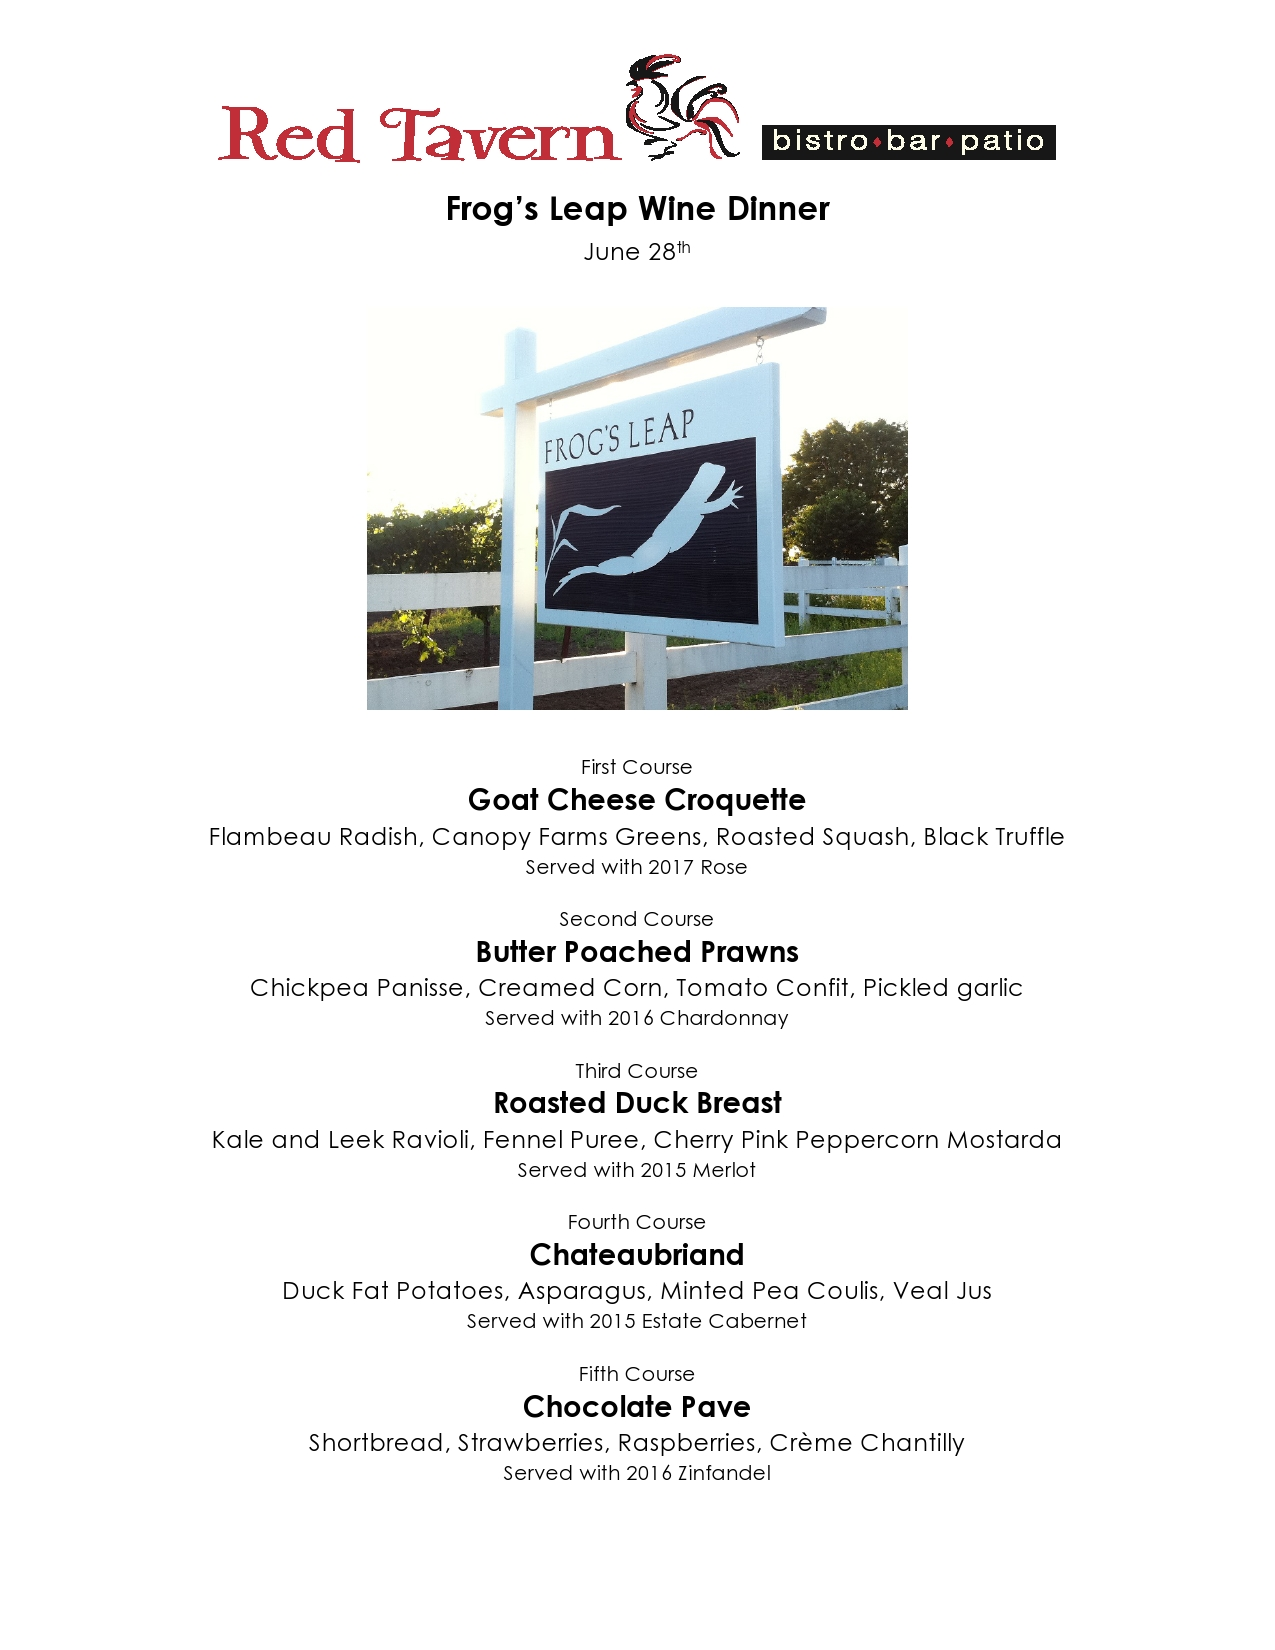 Red Tavern upcoming event: Frog's Leap Wine Dinner – June 28, 2018